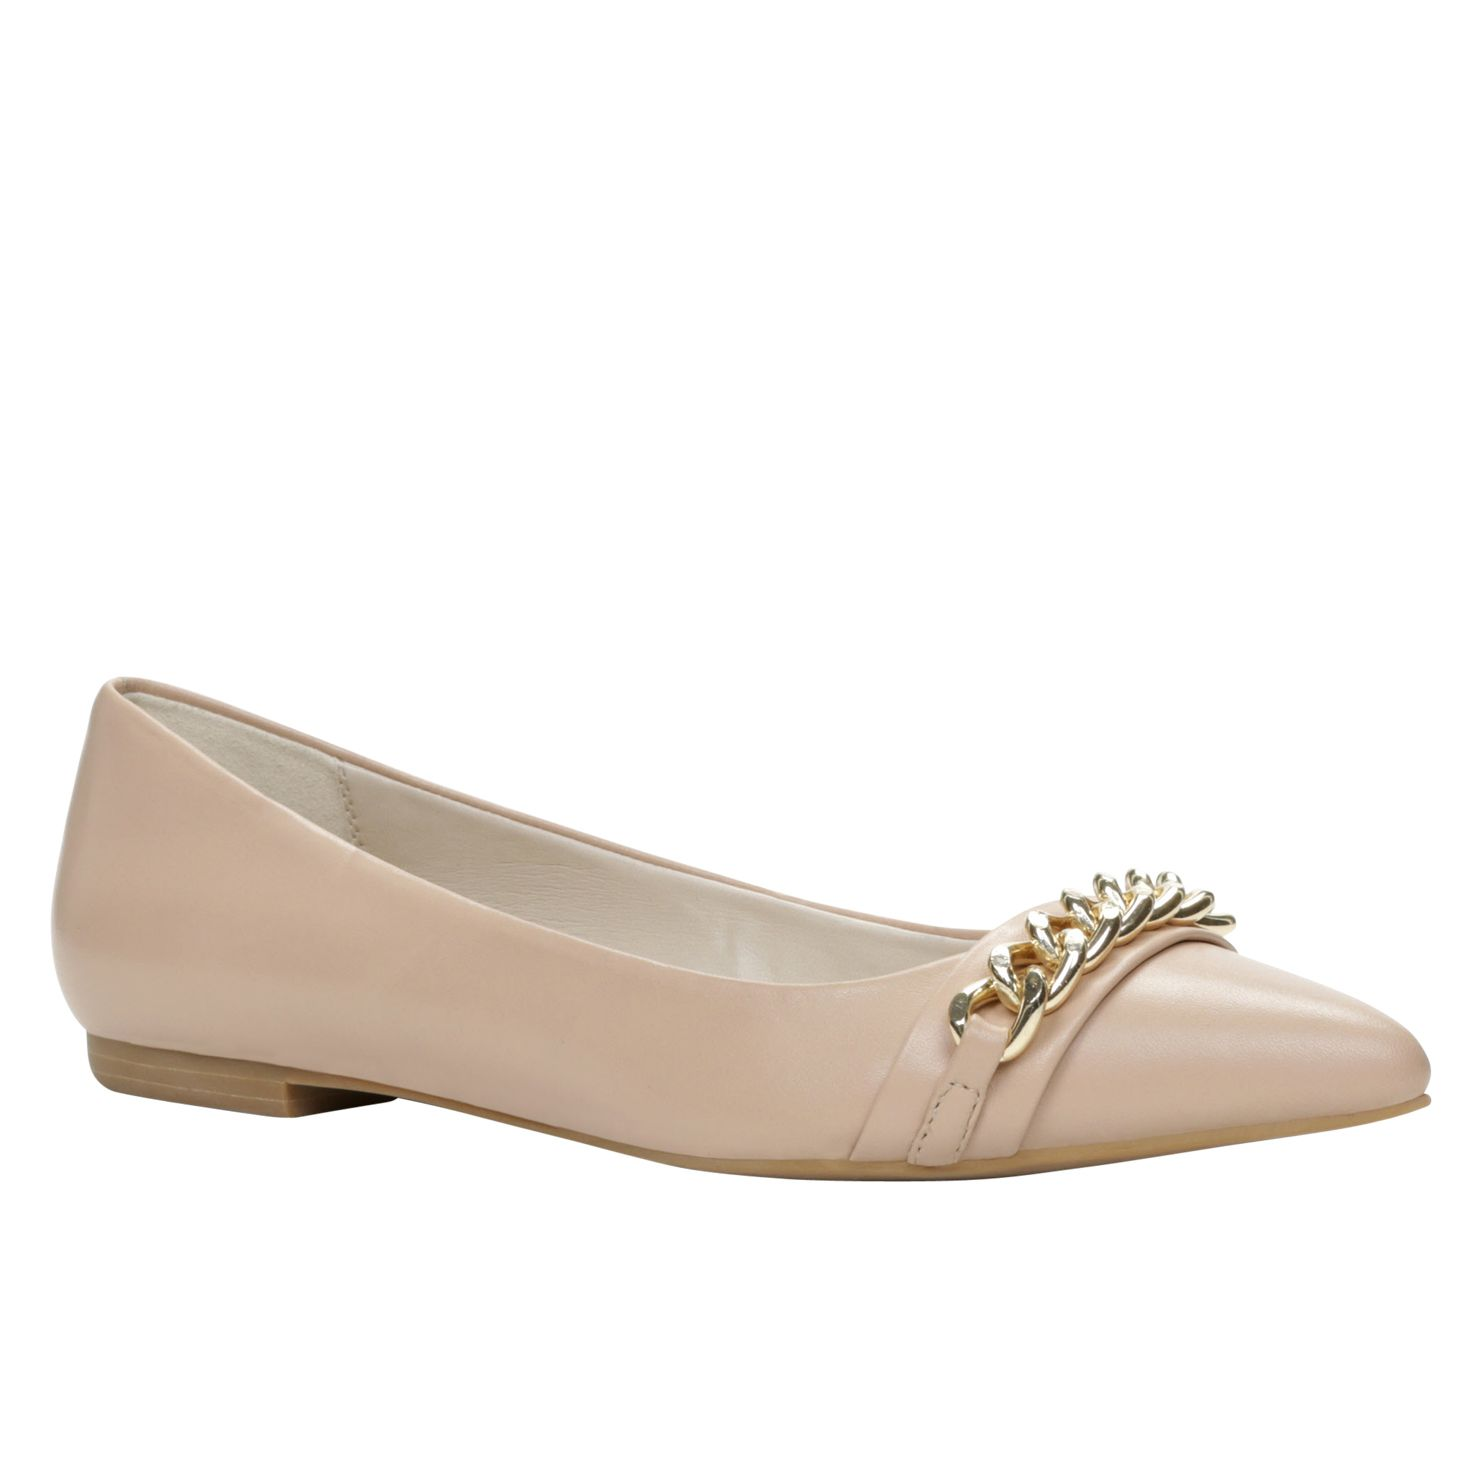 Briarien pointed toe pump shoes